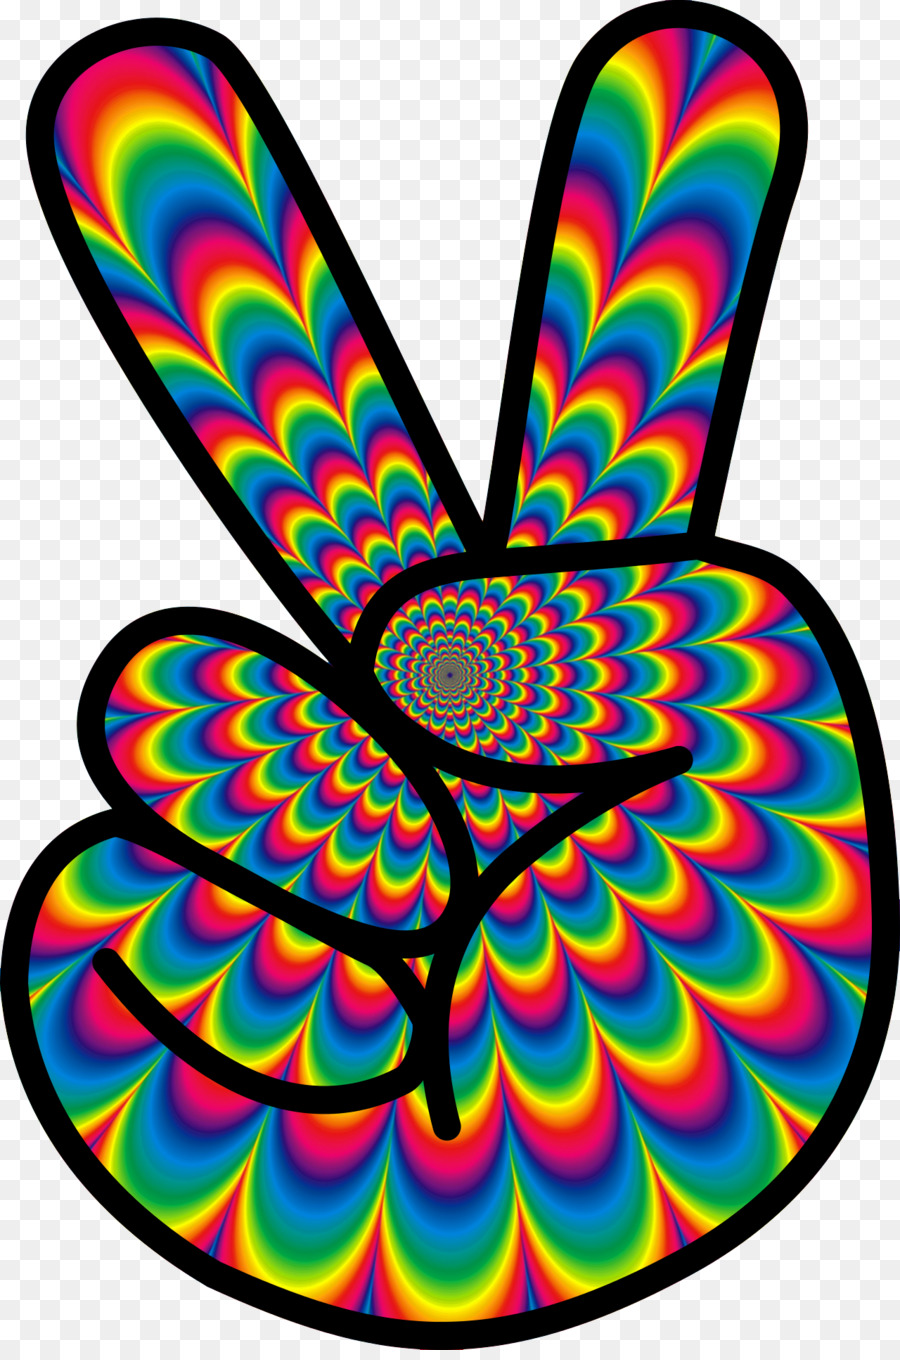 Flower Power Png Download 1280 1920 Free Transparent Hippie Png Download Cleanpng Kisspng